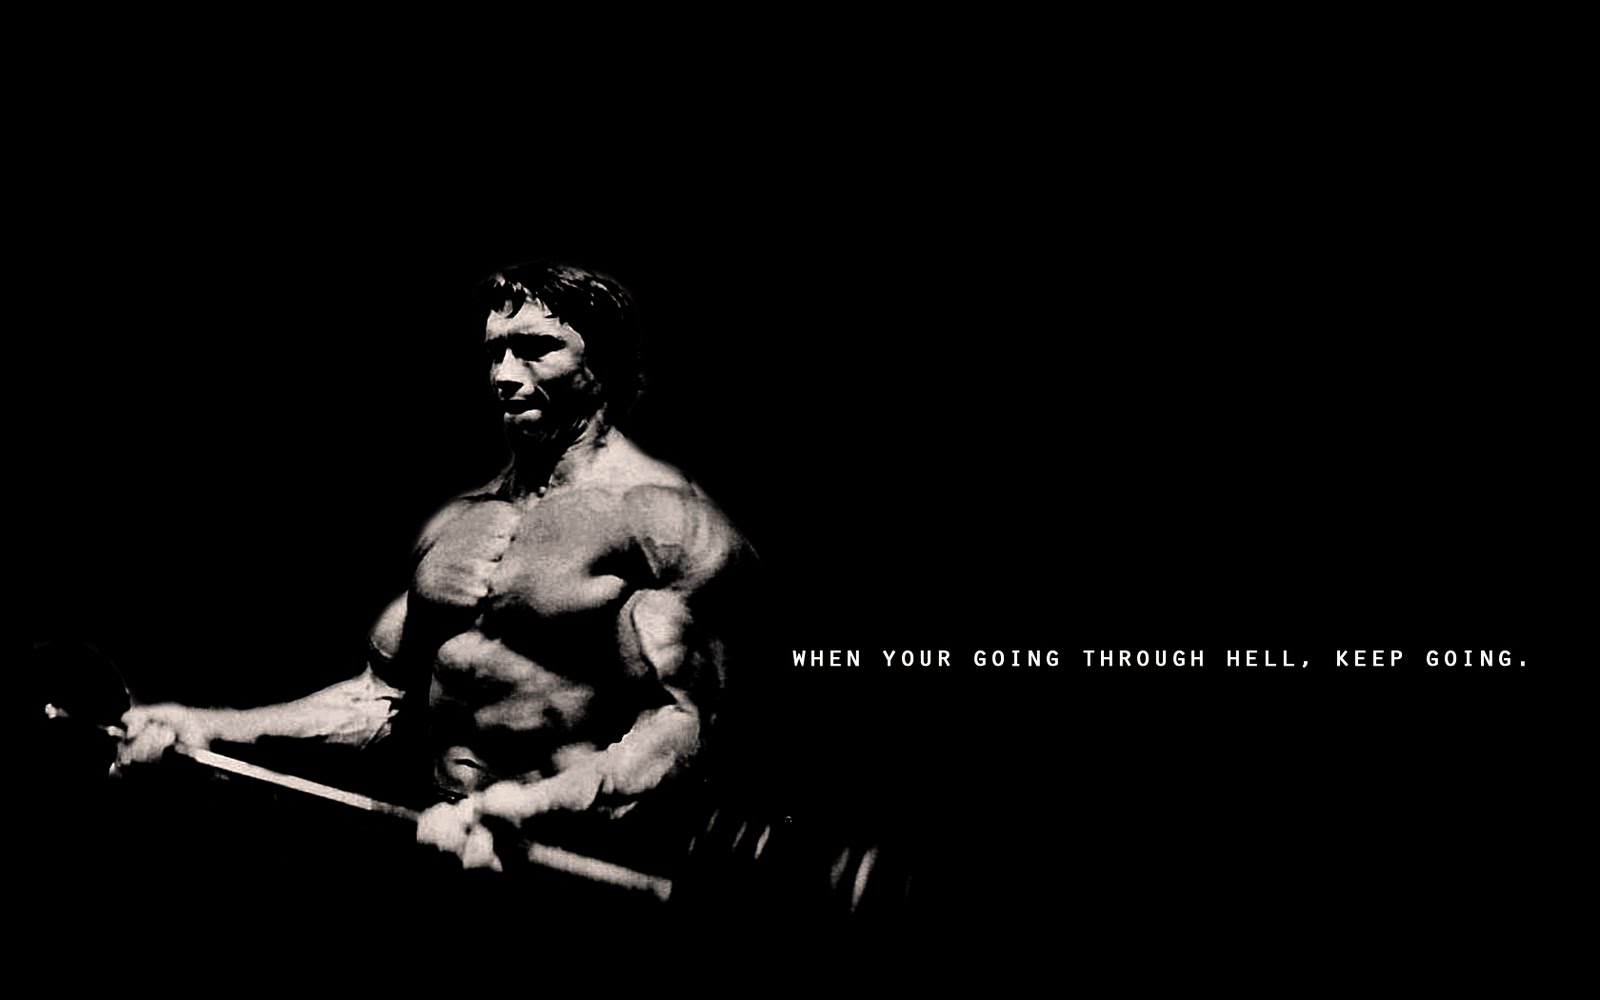 Most Motivational Wallpapers - Page 24 - Bodybuilding.com ...